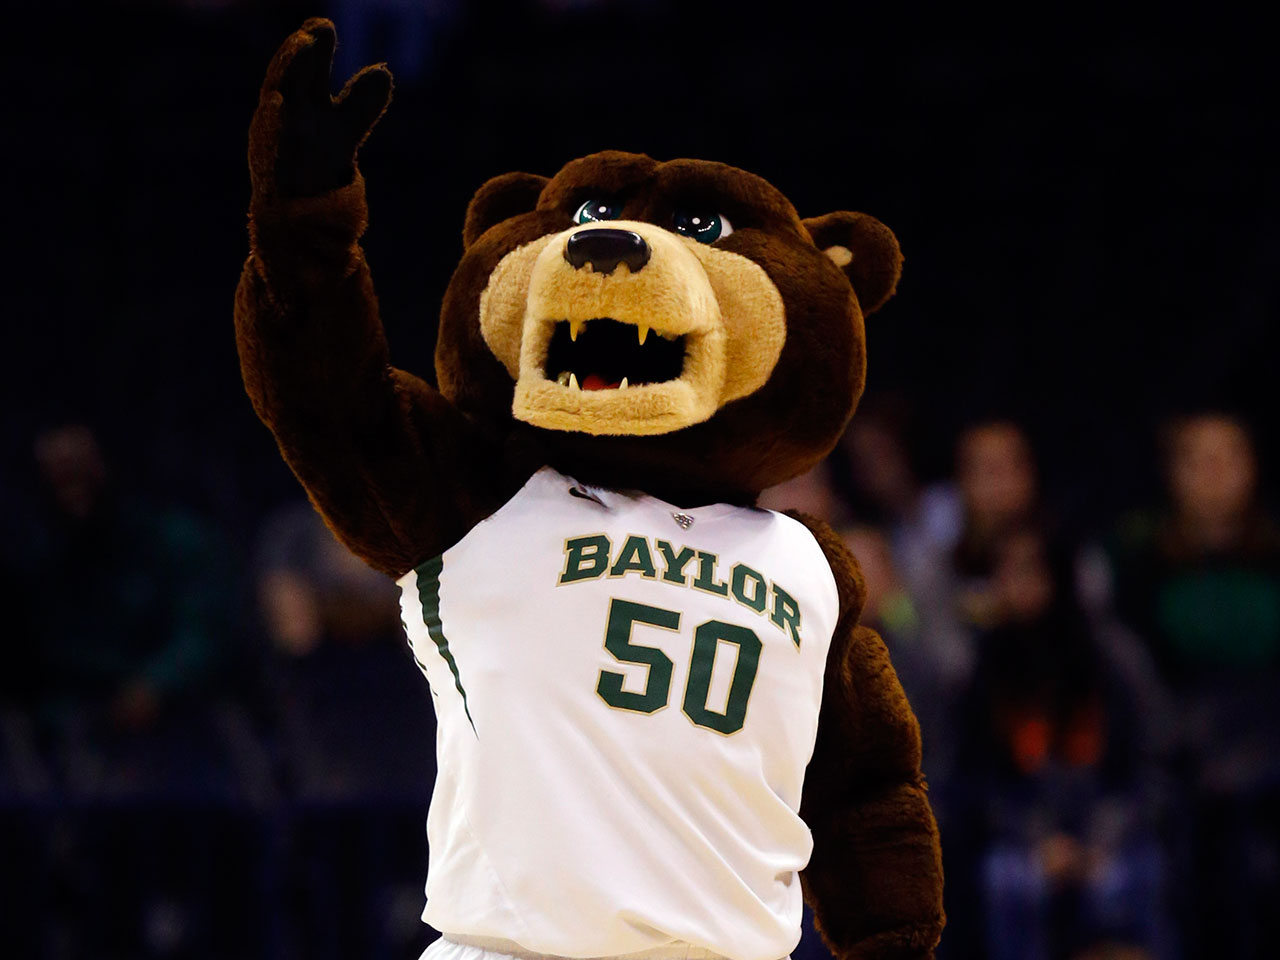 Baylor University Drops Ban On Homosexual Acts From Conduct Rules